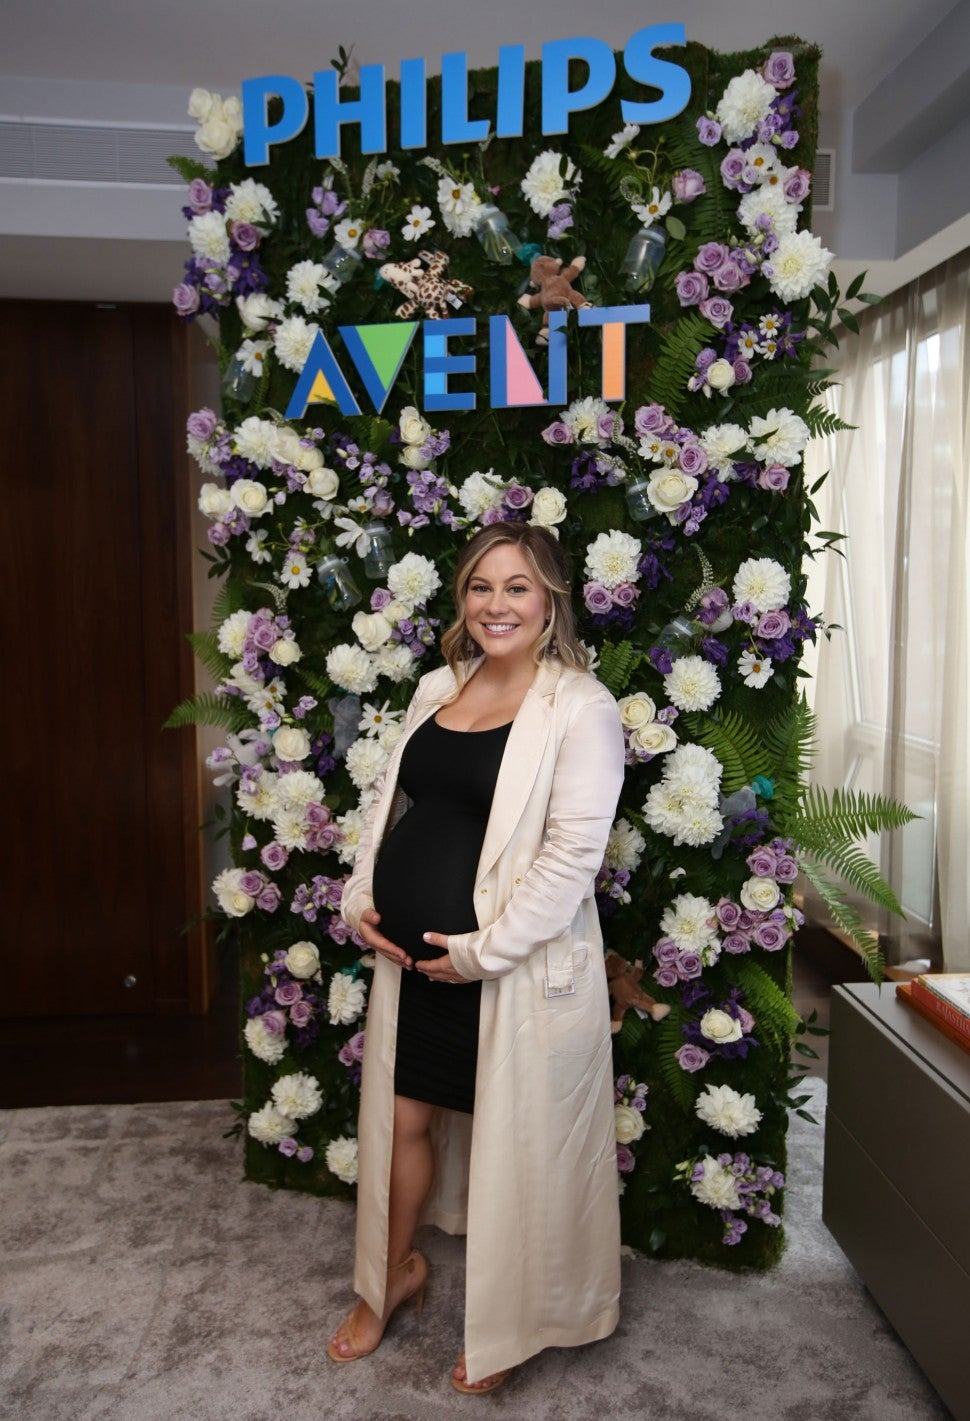 Shawn Johnson with philips avent